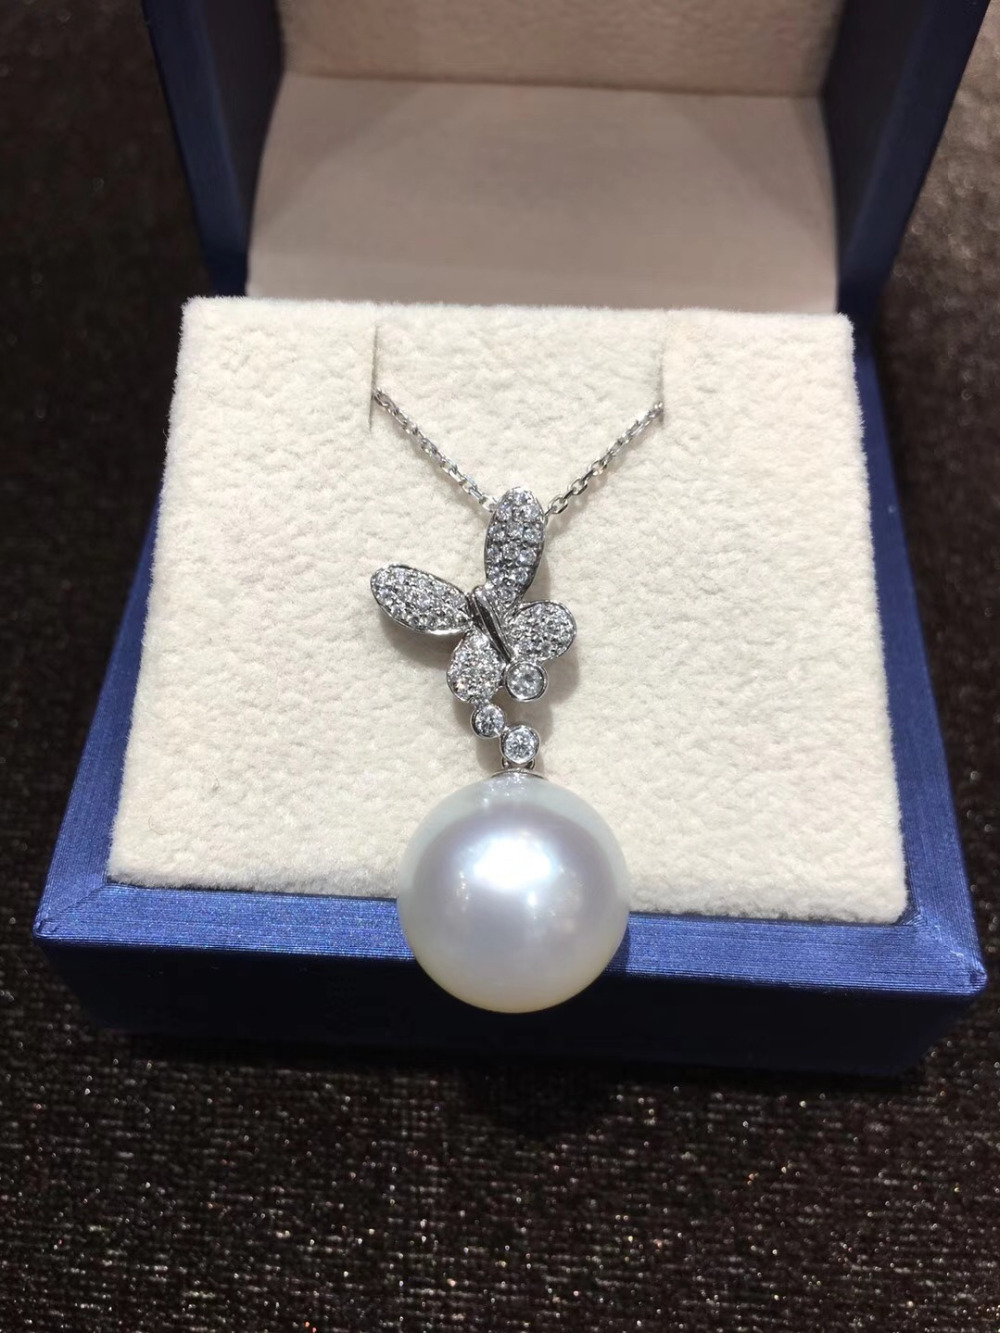 13-14MM Natural Southsea Pearl Pendant White Pearl 18K White Gold With Diamond Butterfly Pendant Fine Women Jewelry